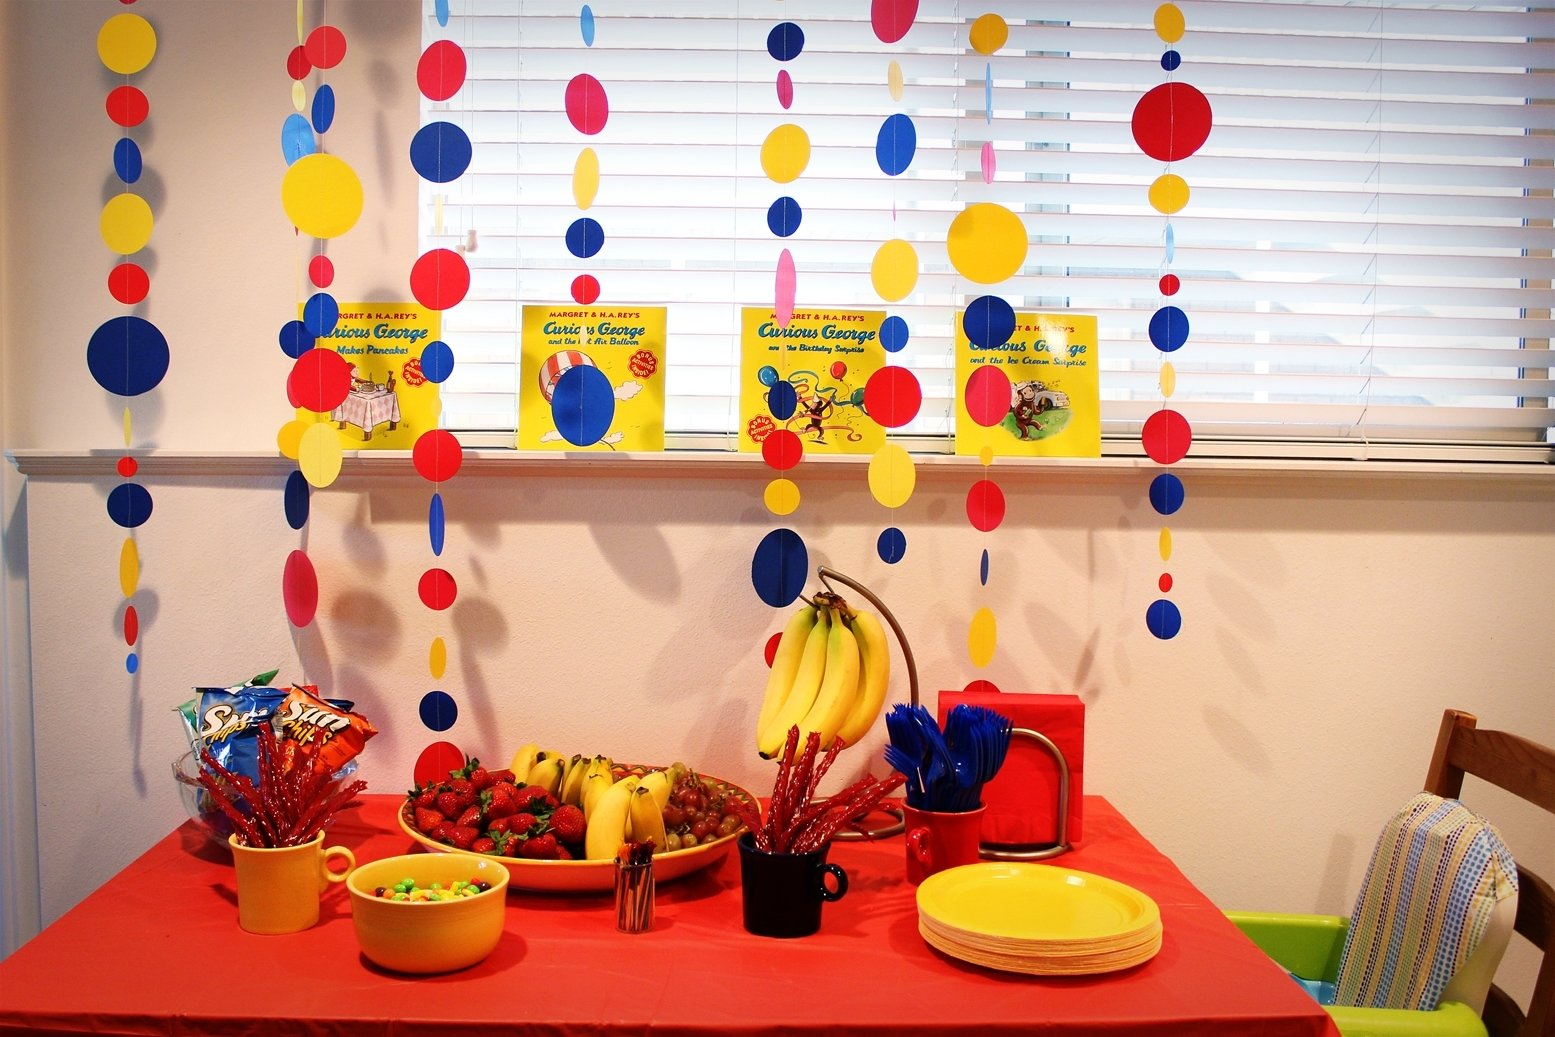 10 Fashionable Curious George Birthday Party Ideas the shipp family 2015 curious george birthday party 2020